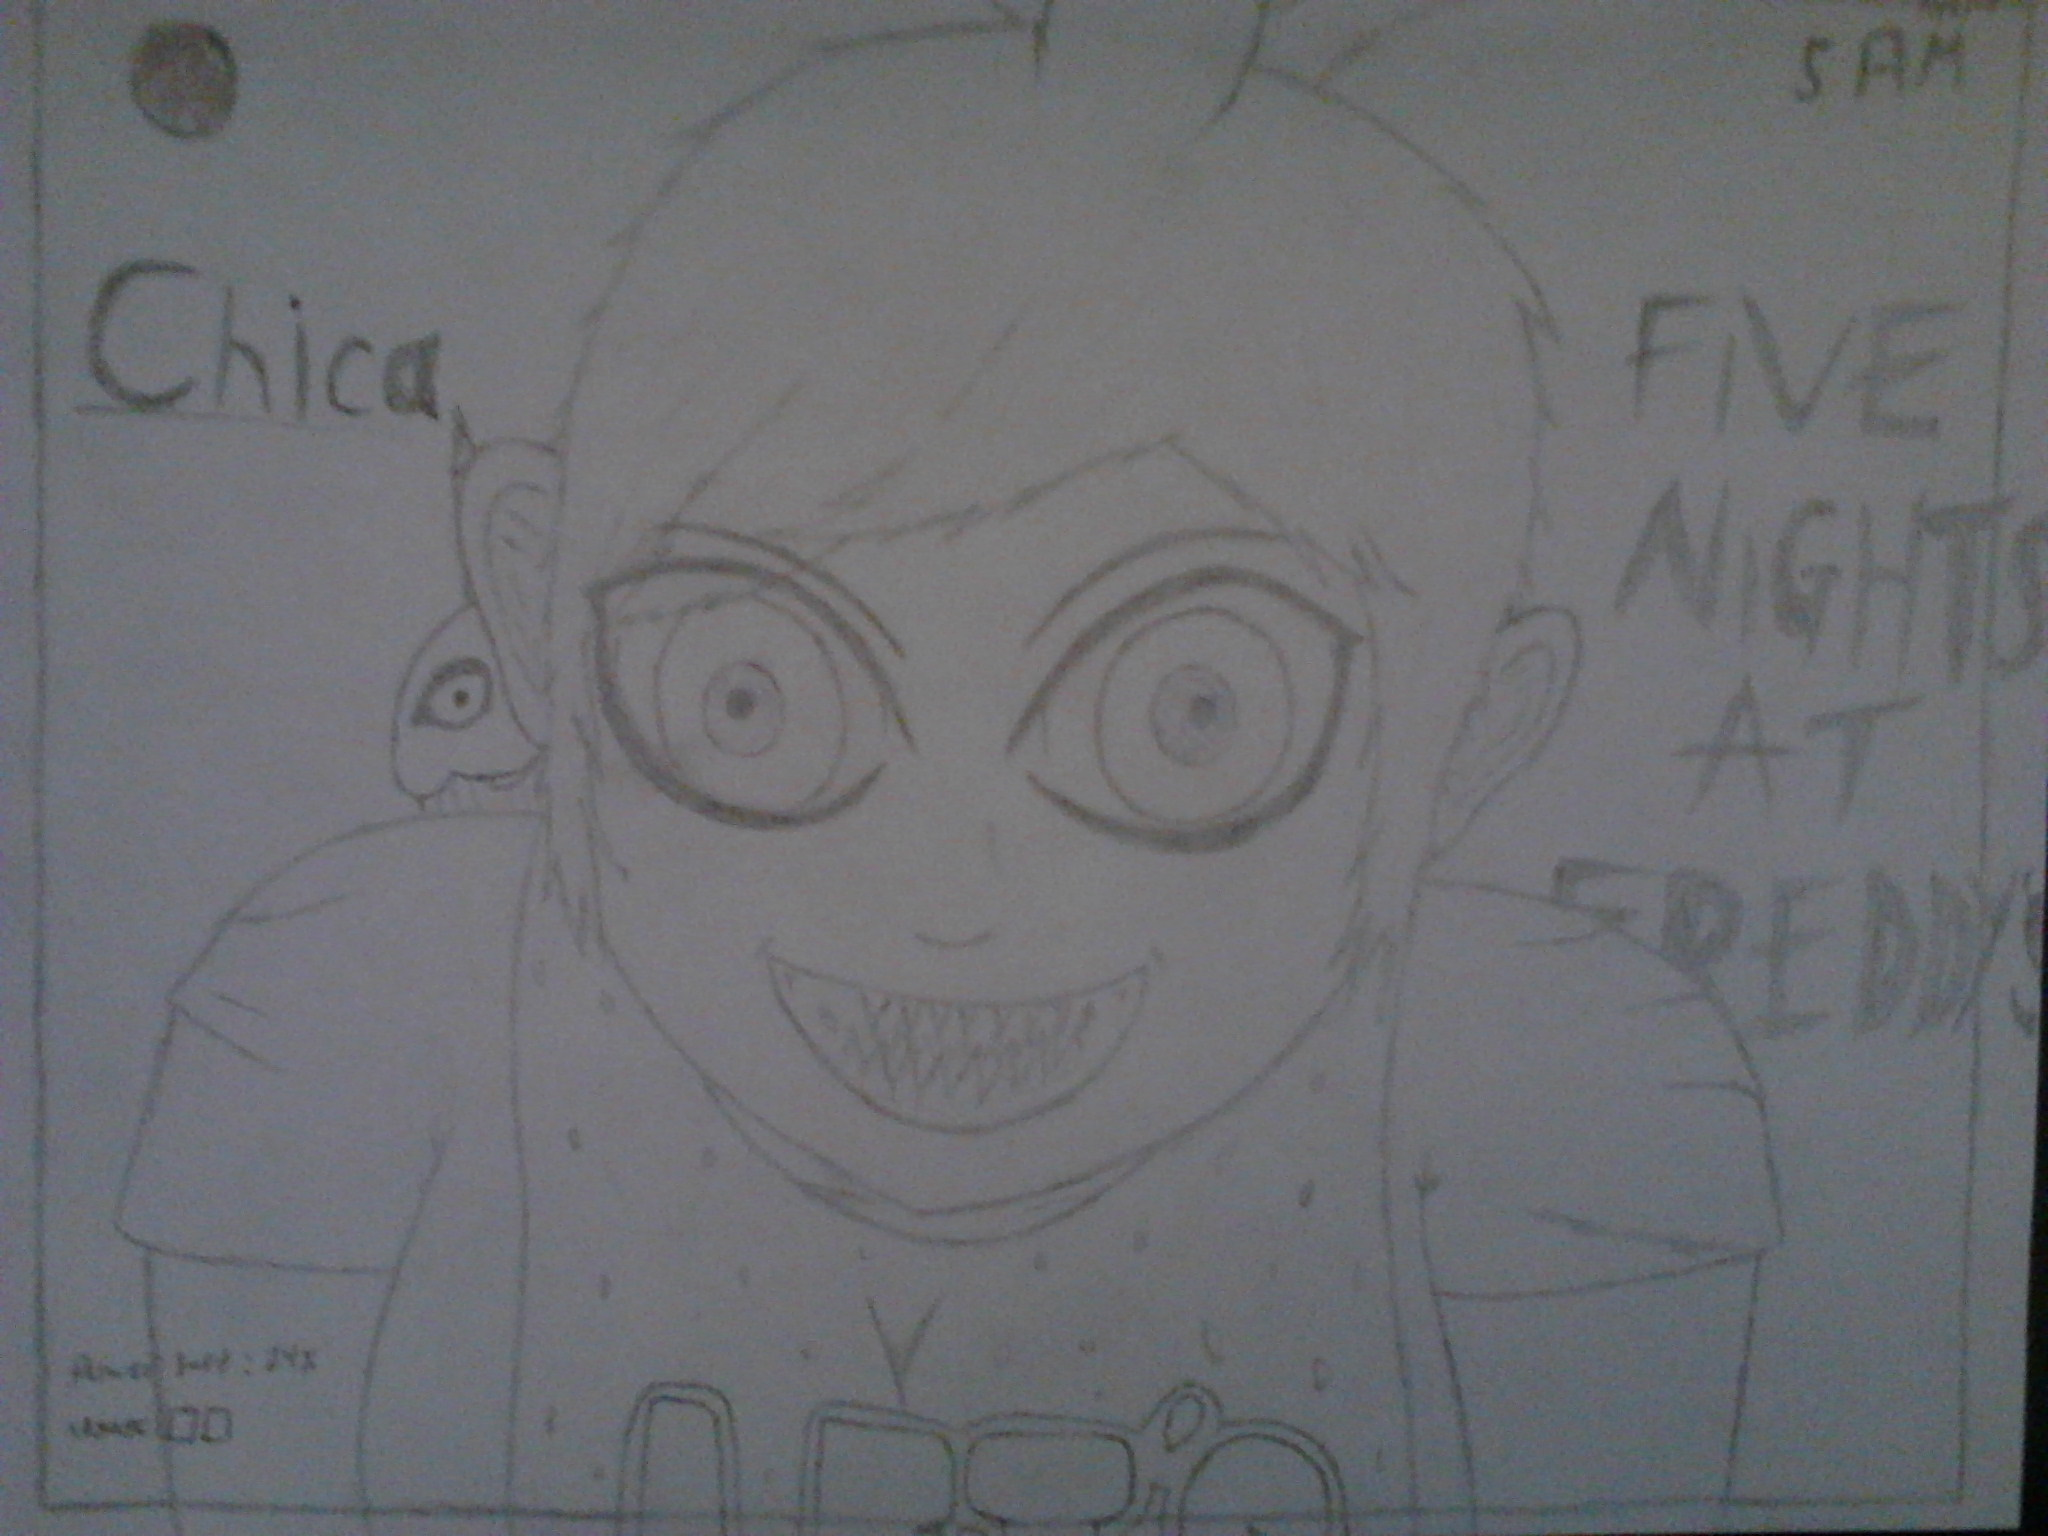 Chica The Chicken (Human)